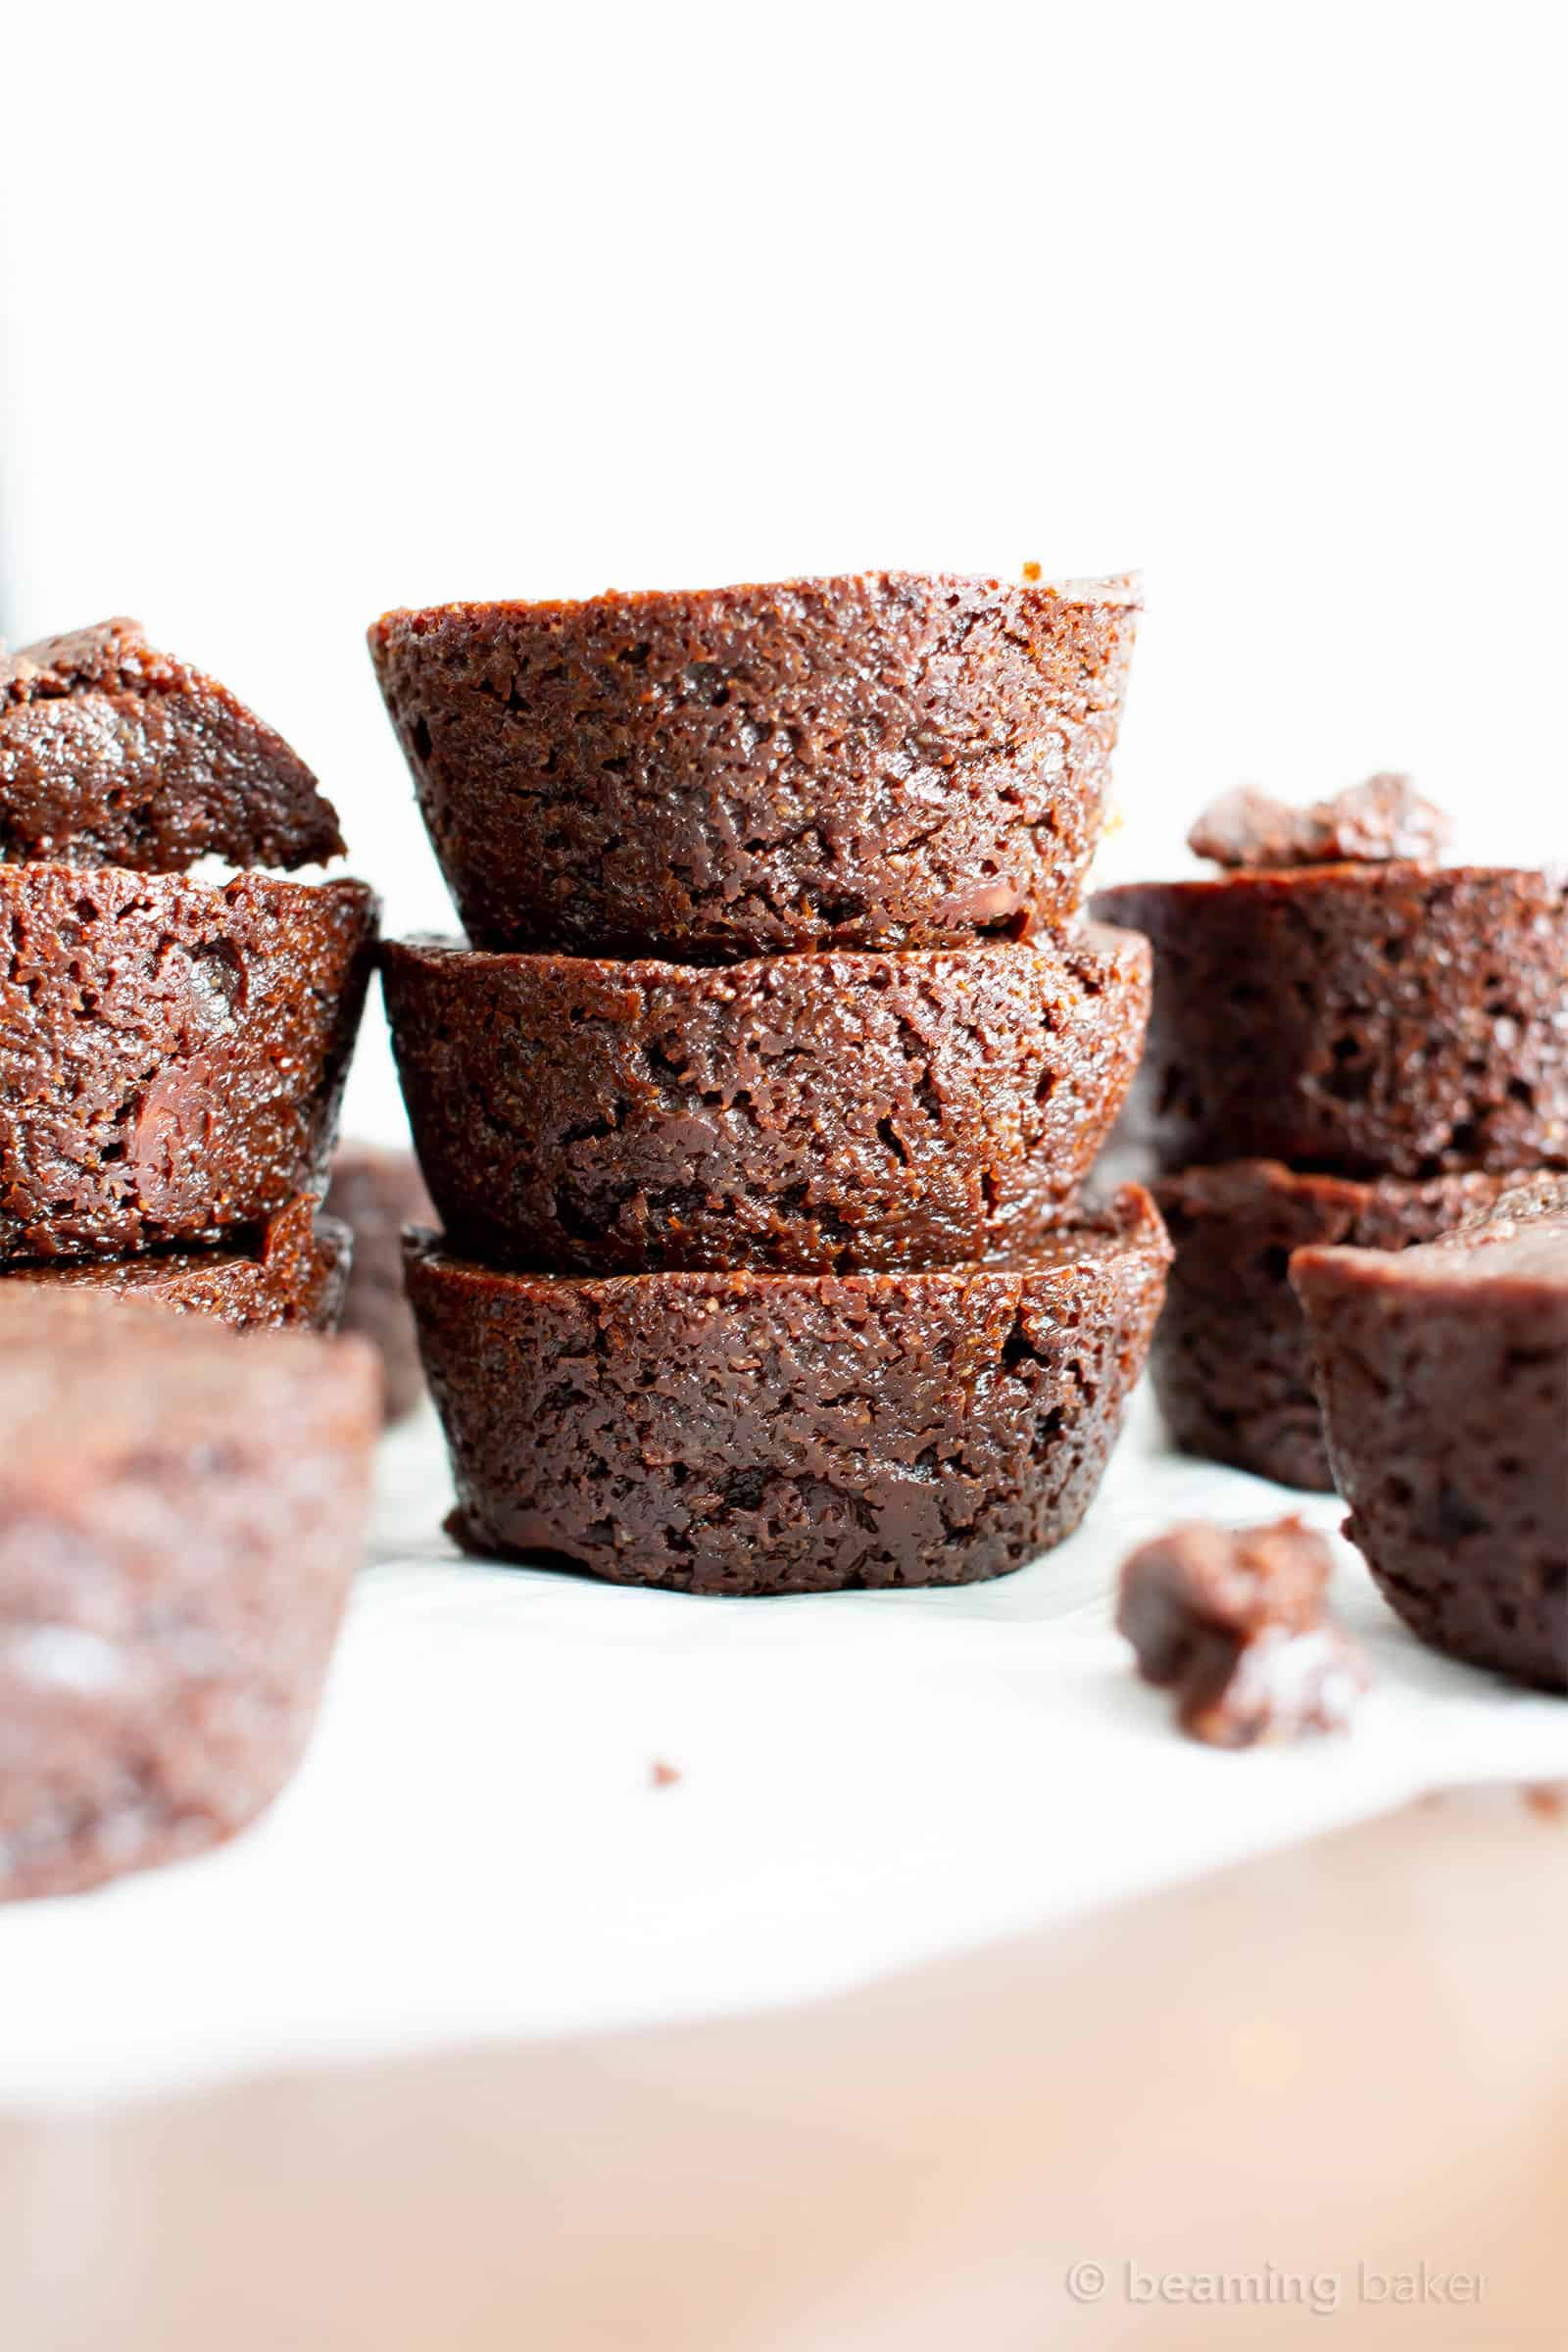 Mini Vegan Brownie Bites Recipe (V, GF): an easy recipe for soft, fudgy 'n moist two bite mini brownies bursting with rich, chocolate flavor. Made with healthy, whole ingredients. #Vegan #GlutenFree #DairyFree #Brownies #VeganBaking #Chocolate | Recipe at BeamingBaker.com